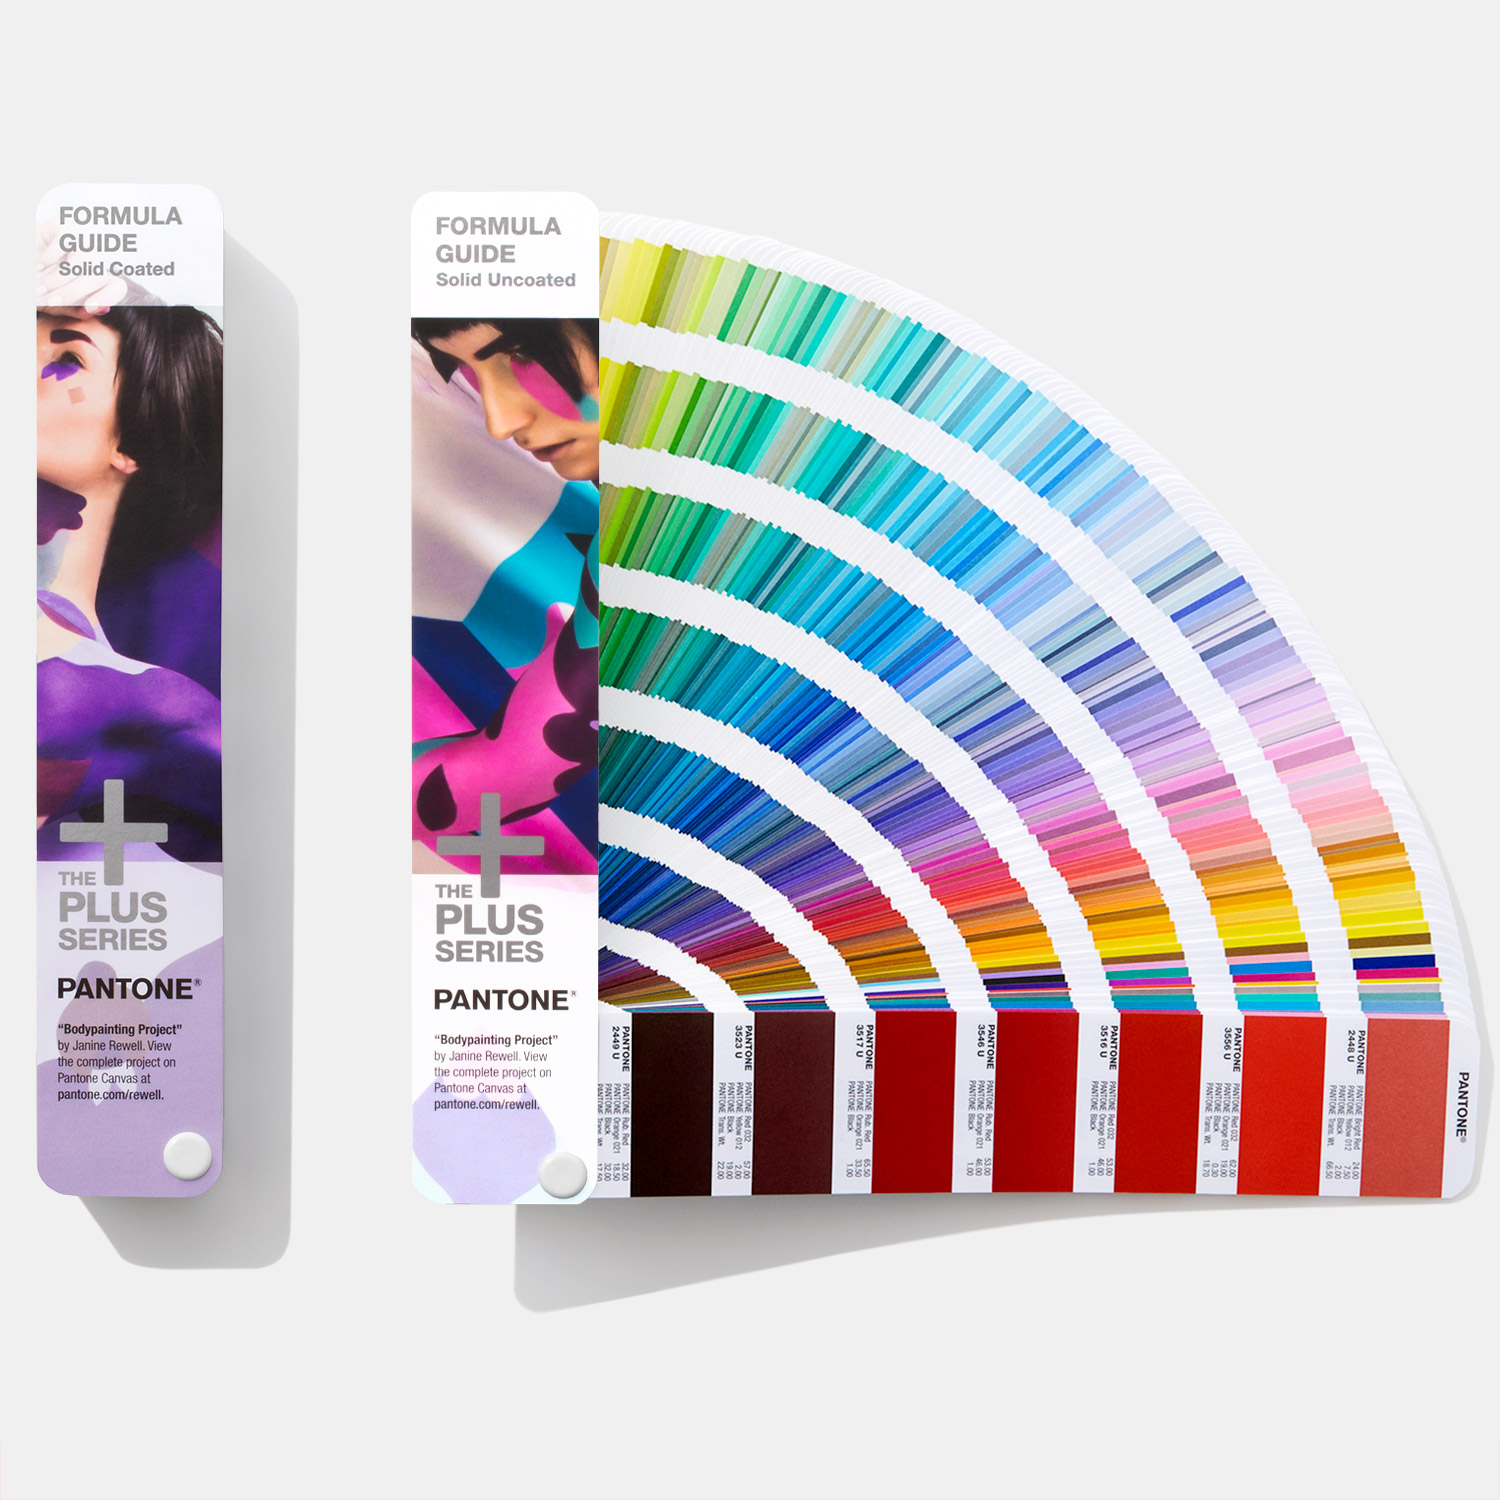 Pantone Color Guides